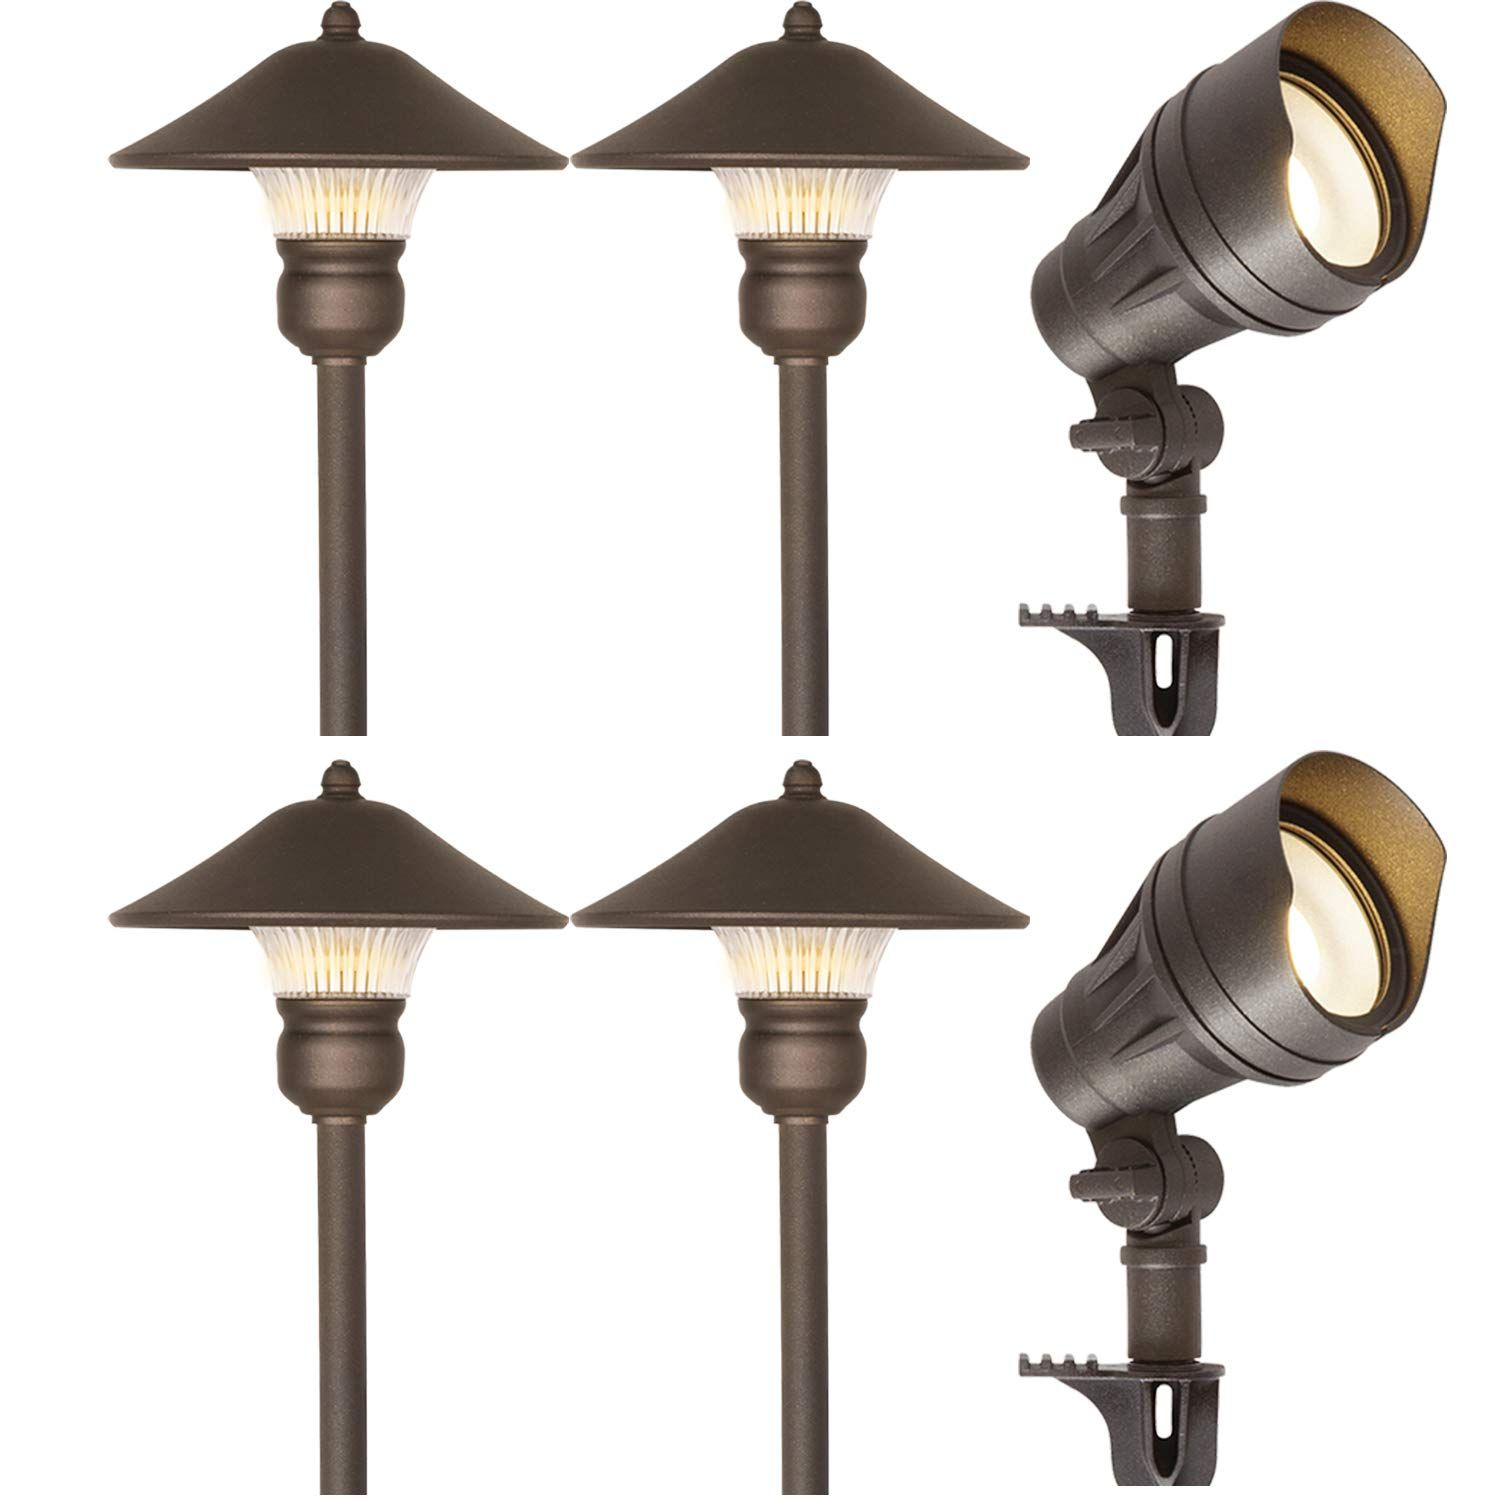 Hykolity 6 Pack Bronze Low Voltage Led Landscape Kits 12v Pathway Flood Light Kits 10w 39 Outdoor Light Fixtures Outdoor Lighting Design Diy Outdoor Lighting